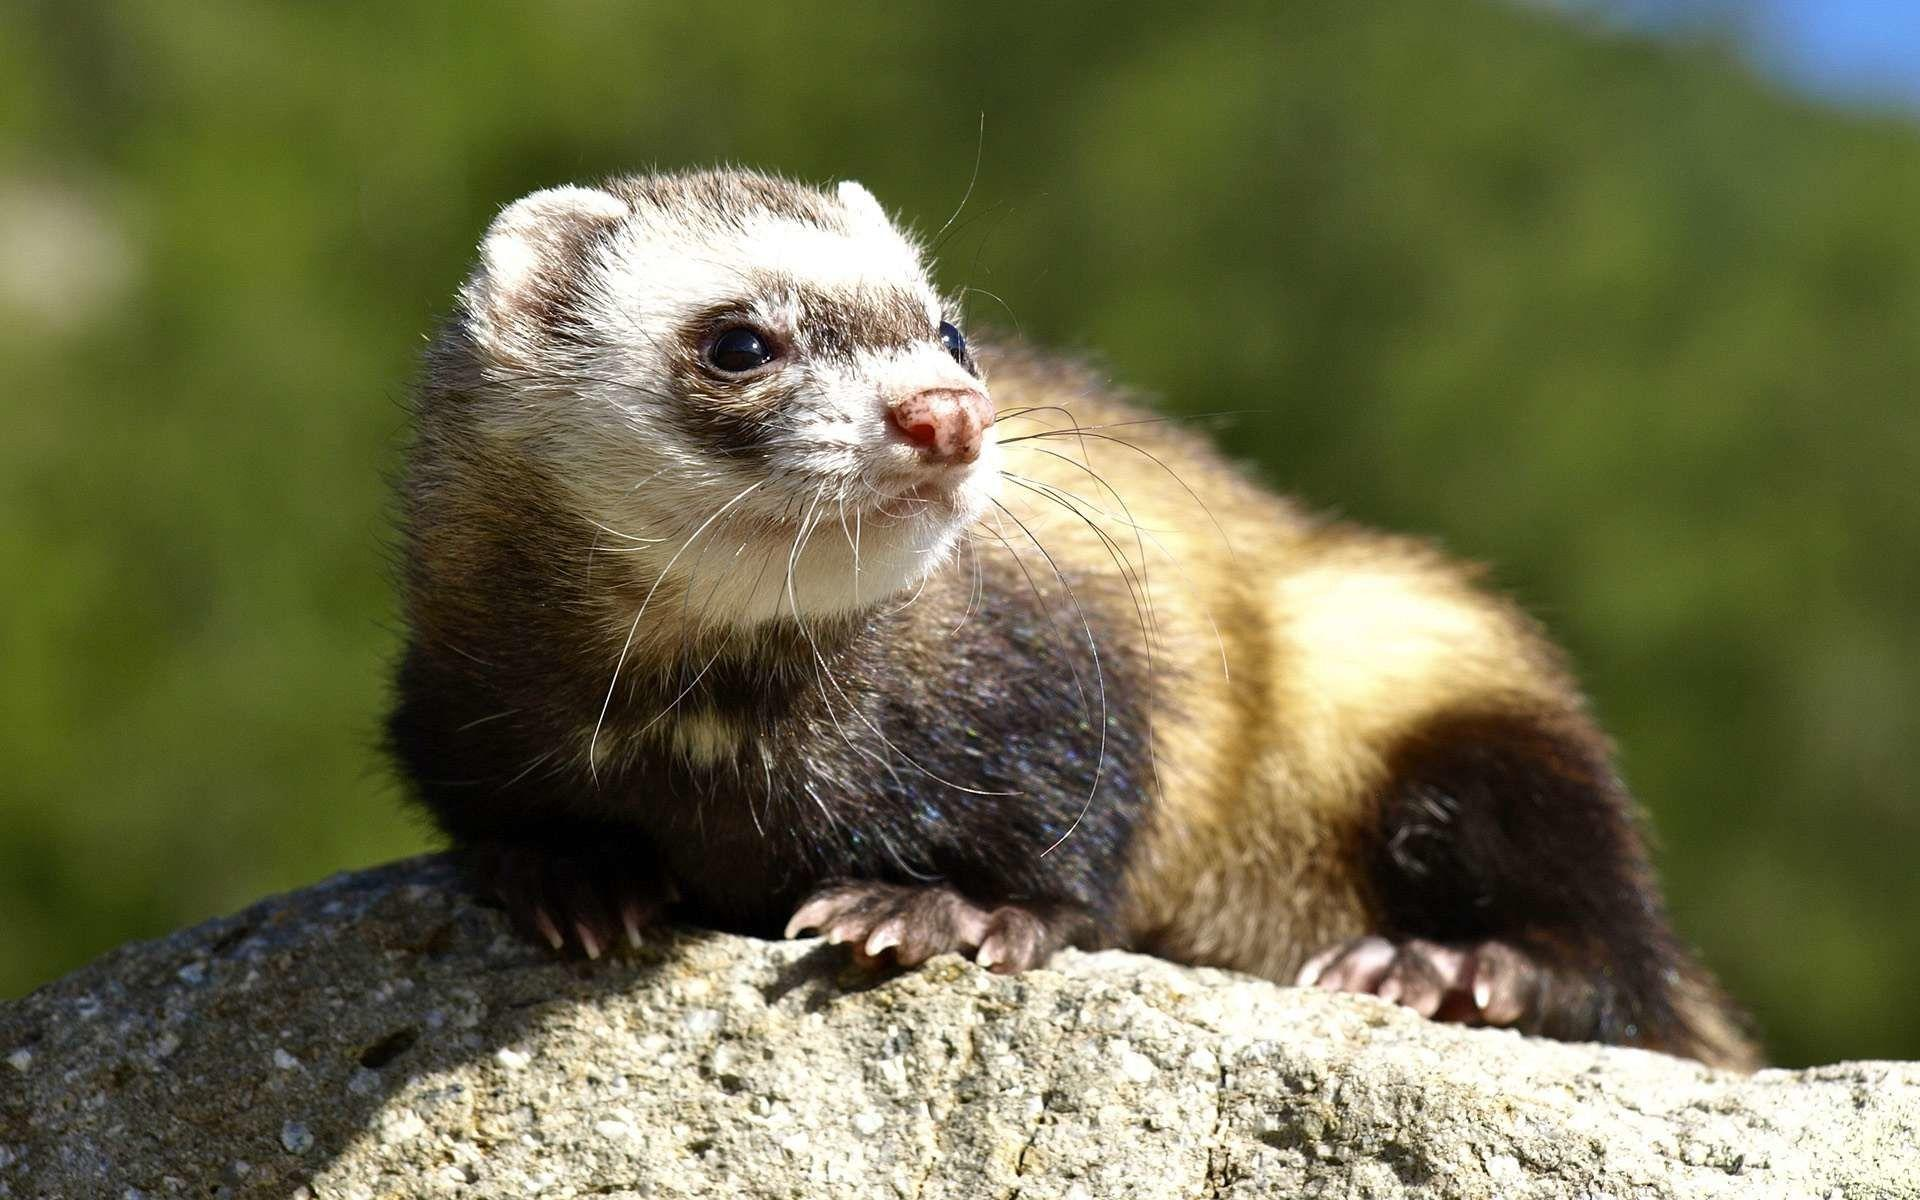 ferret face wallpaper background - photo #18